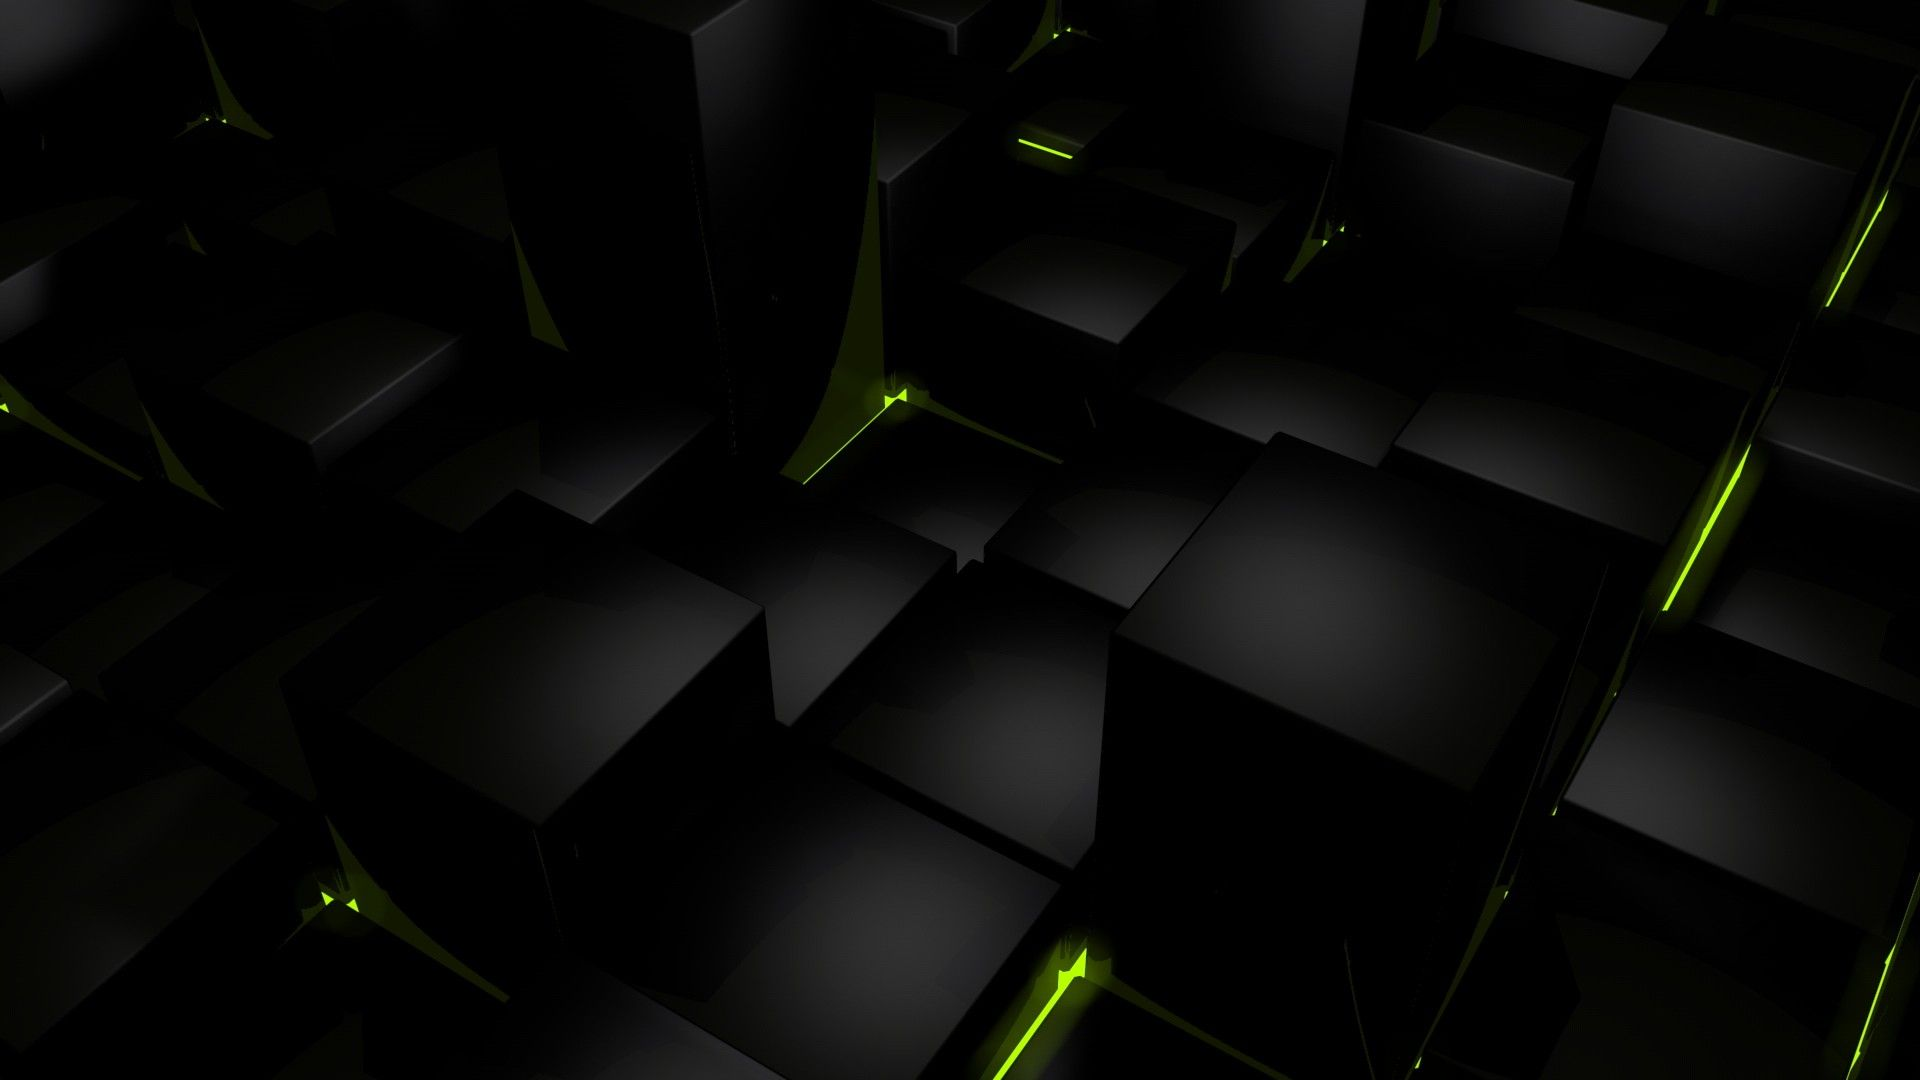 Hd wallpaper with black background - Full Hd P Space Wallpapers Desktop Backgrounds Hd Downloads